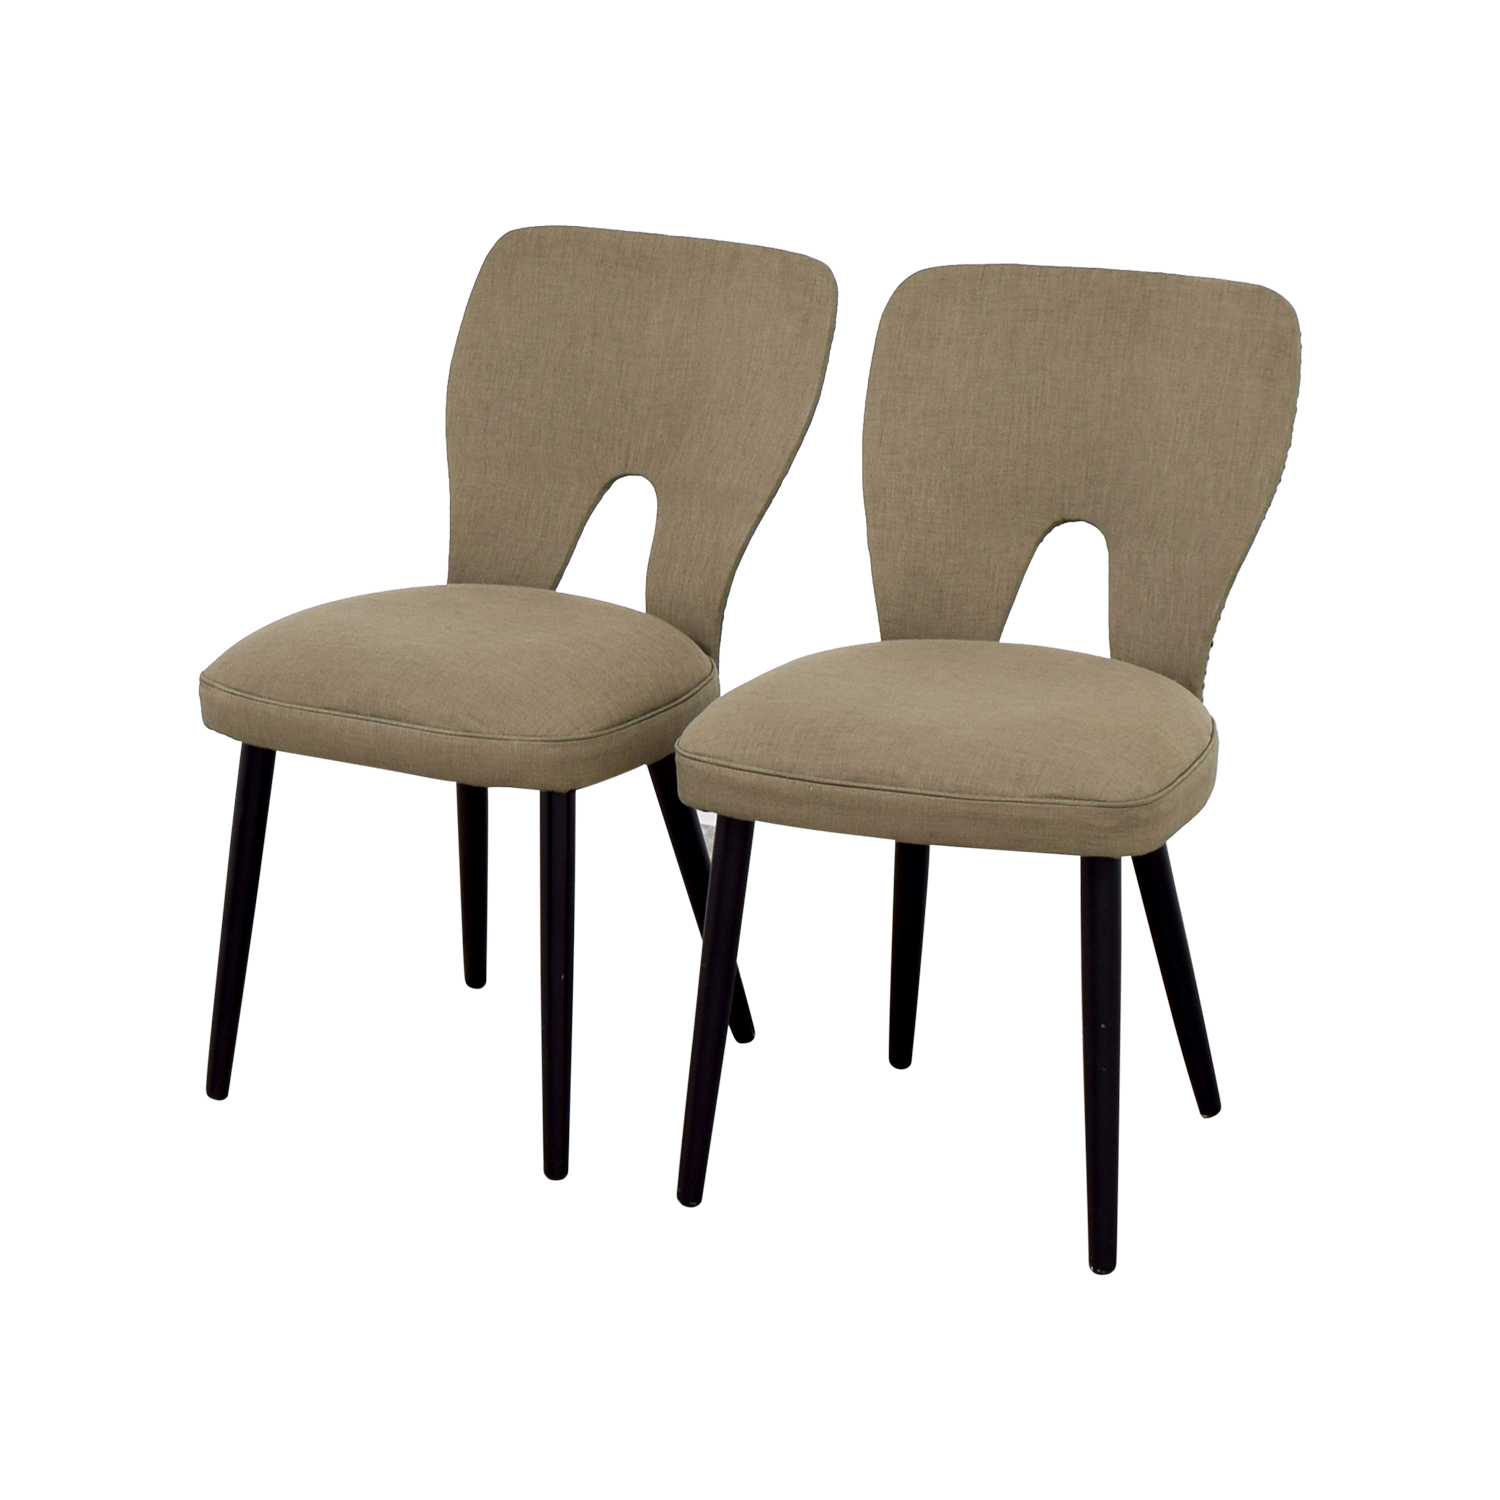 dining chairs canada upholstered pub tables and target 62 off wayfair beige